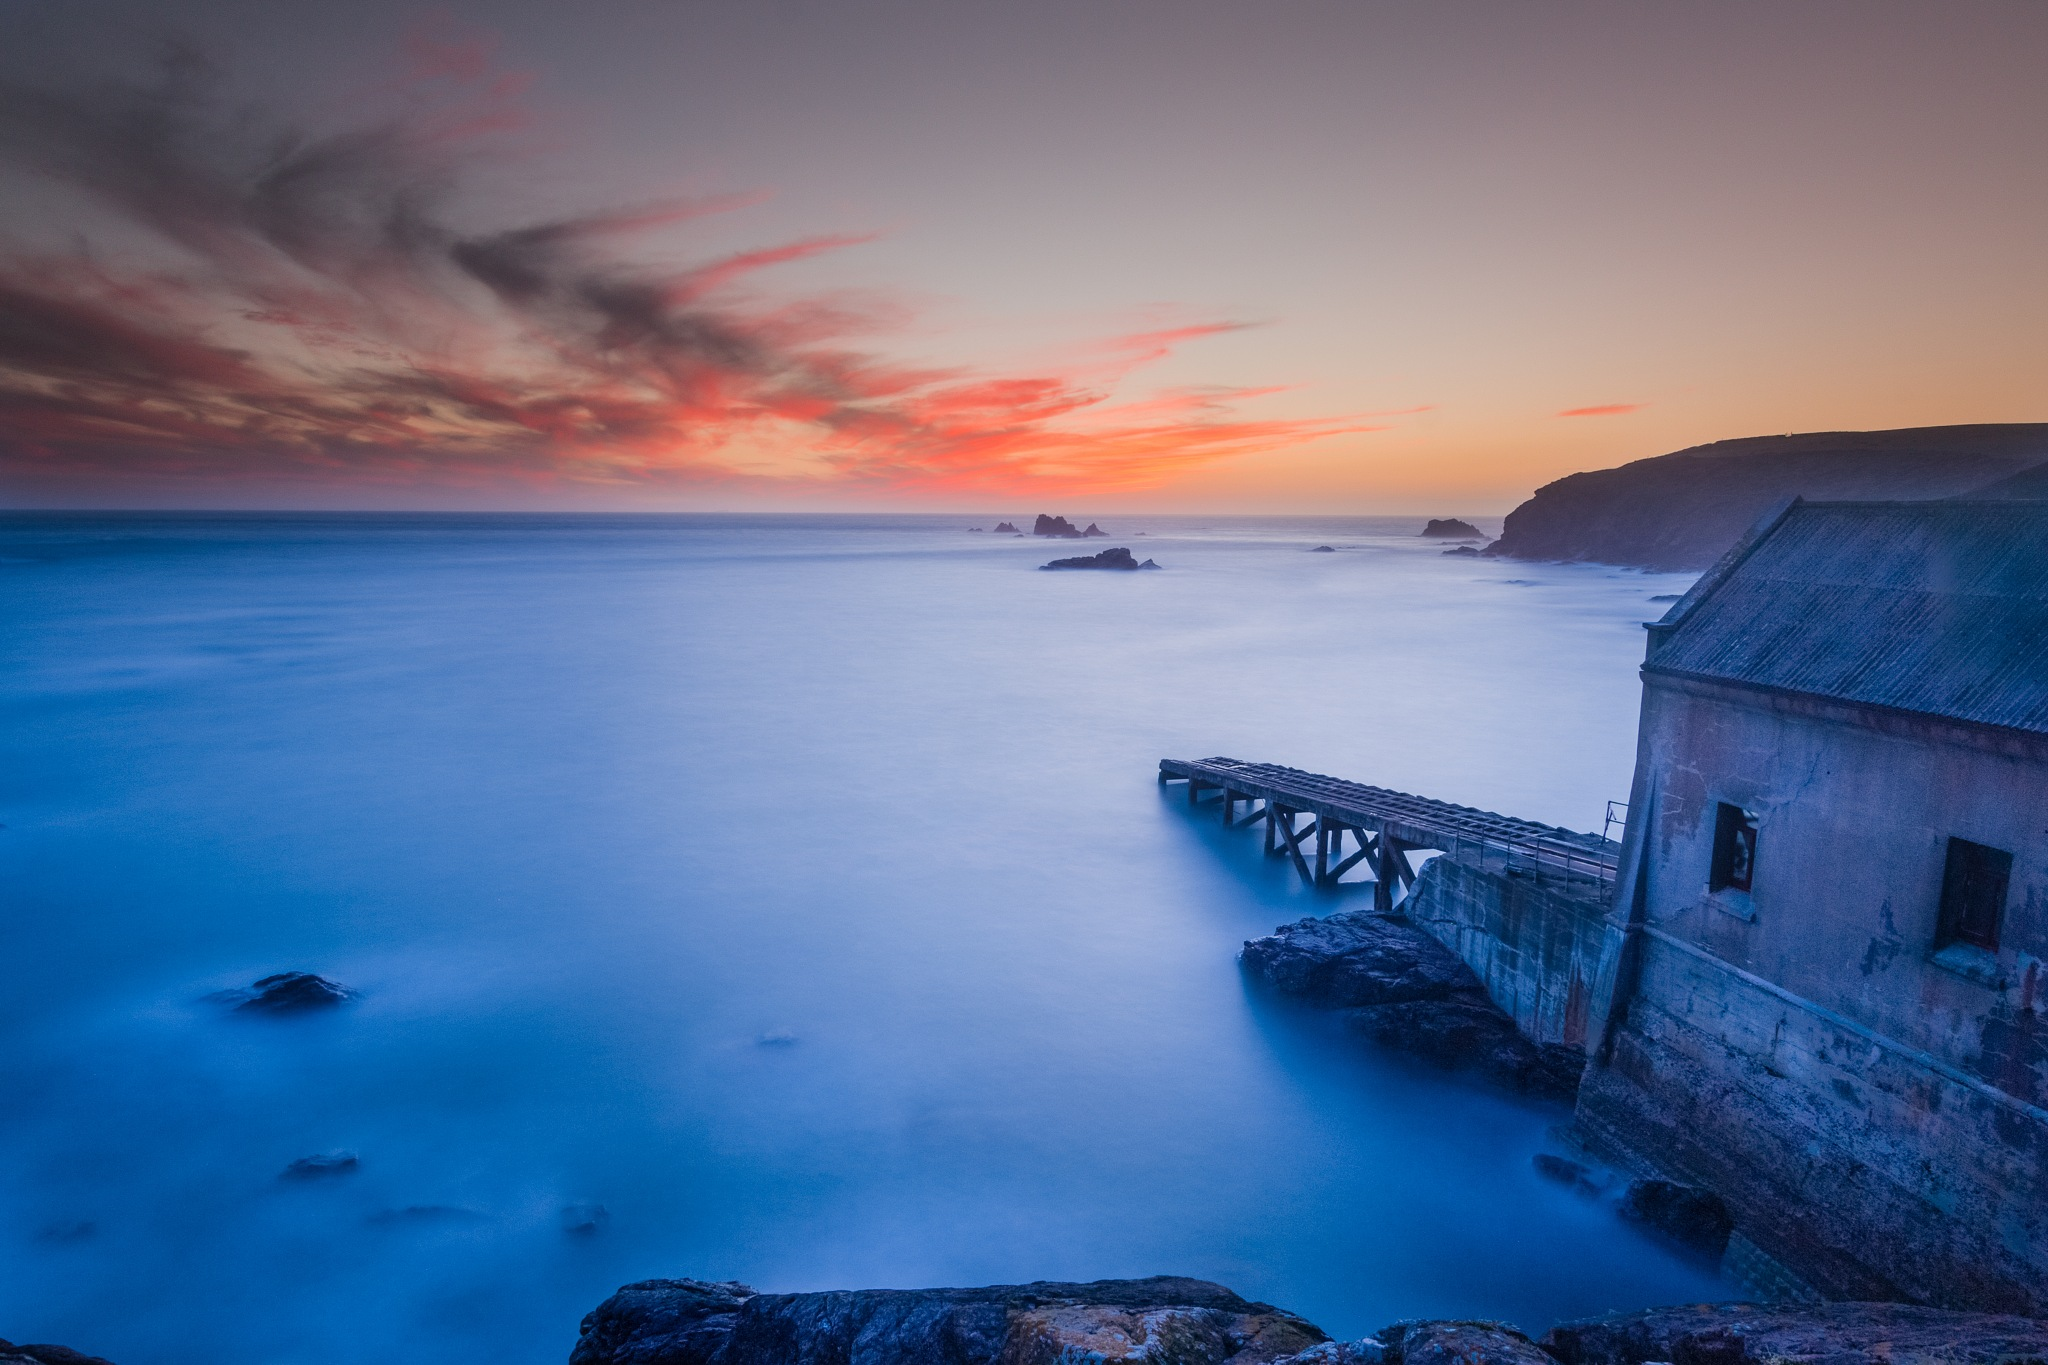 Sunset at Lizard Point by moley67